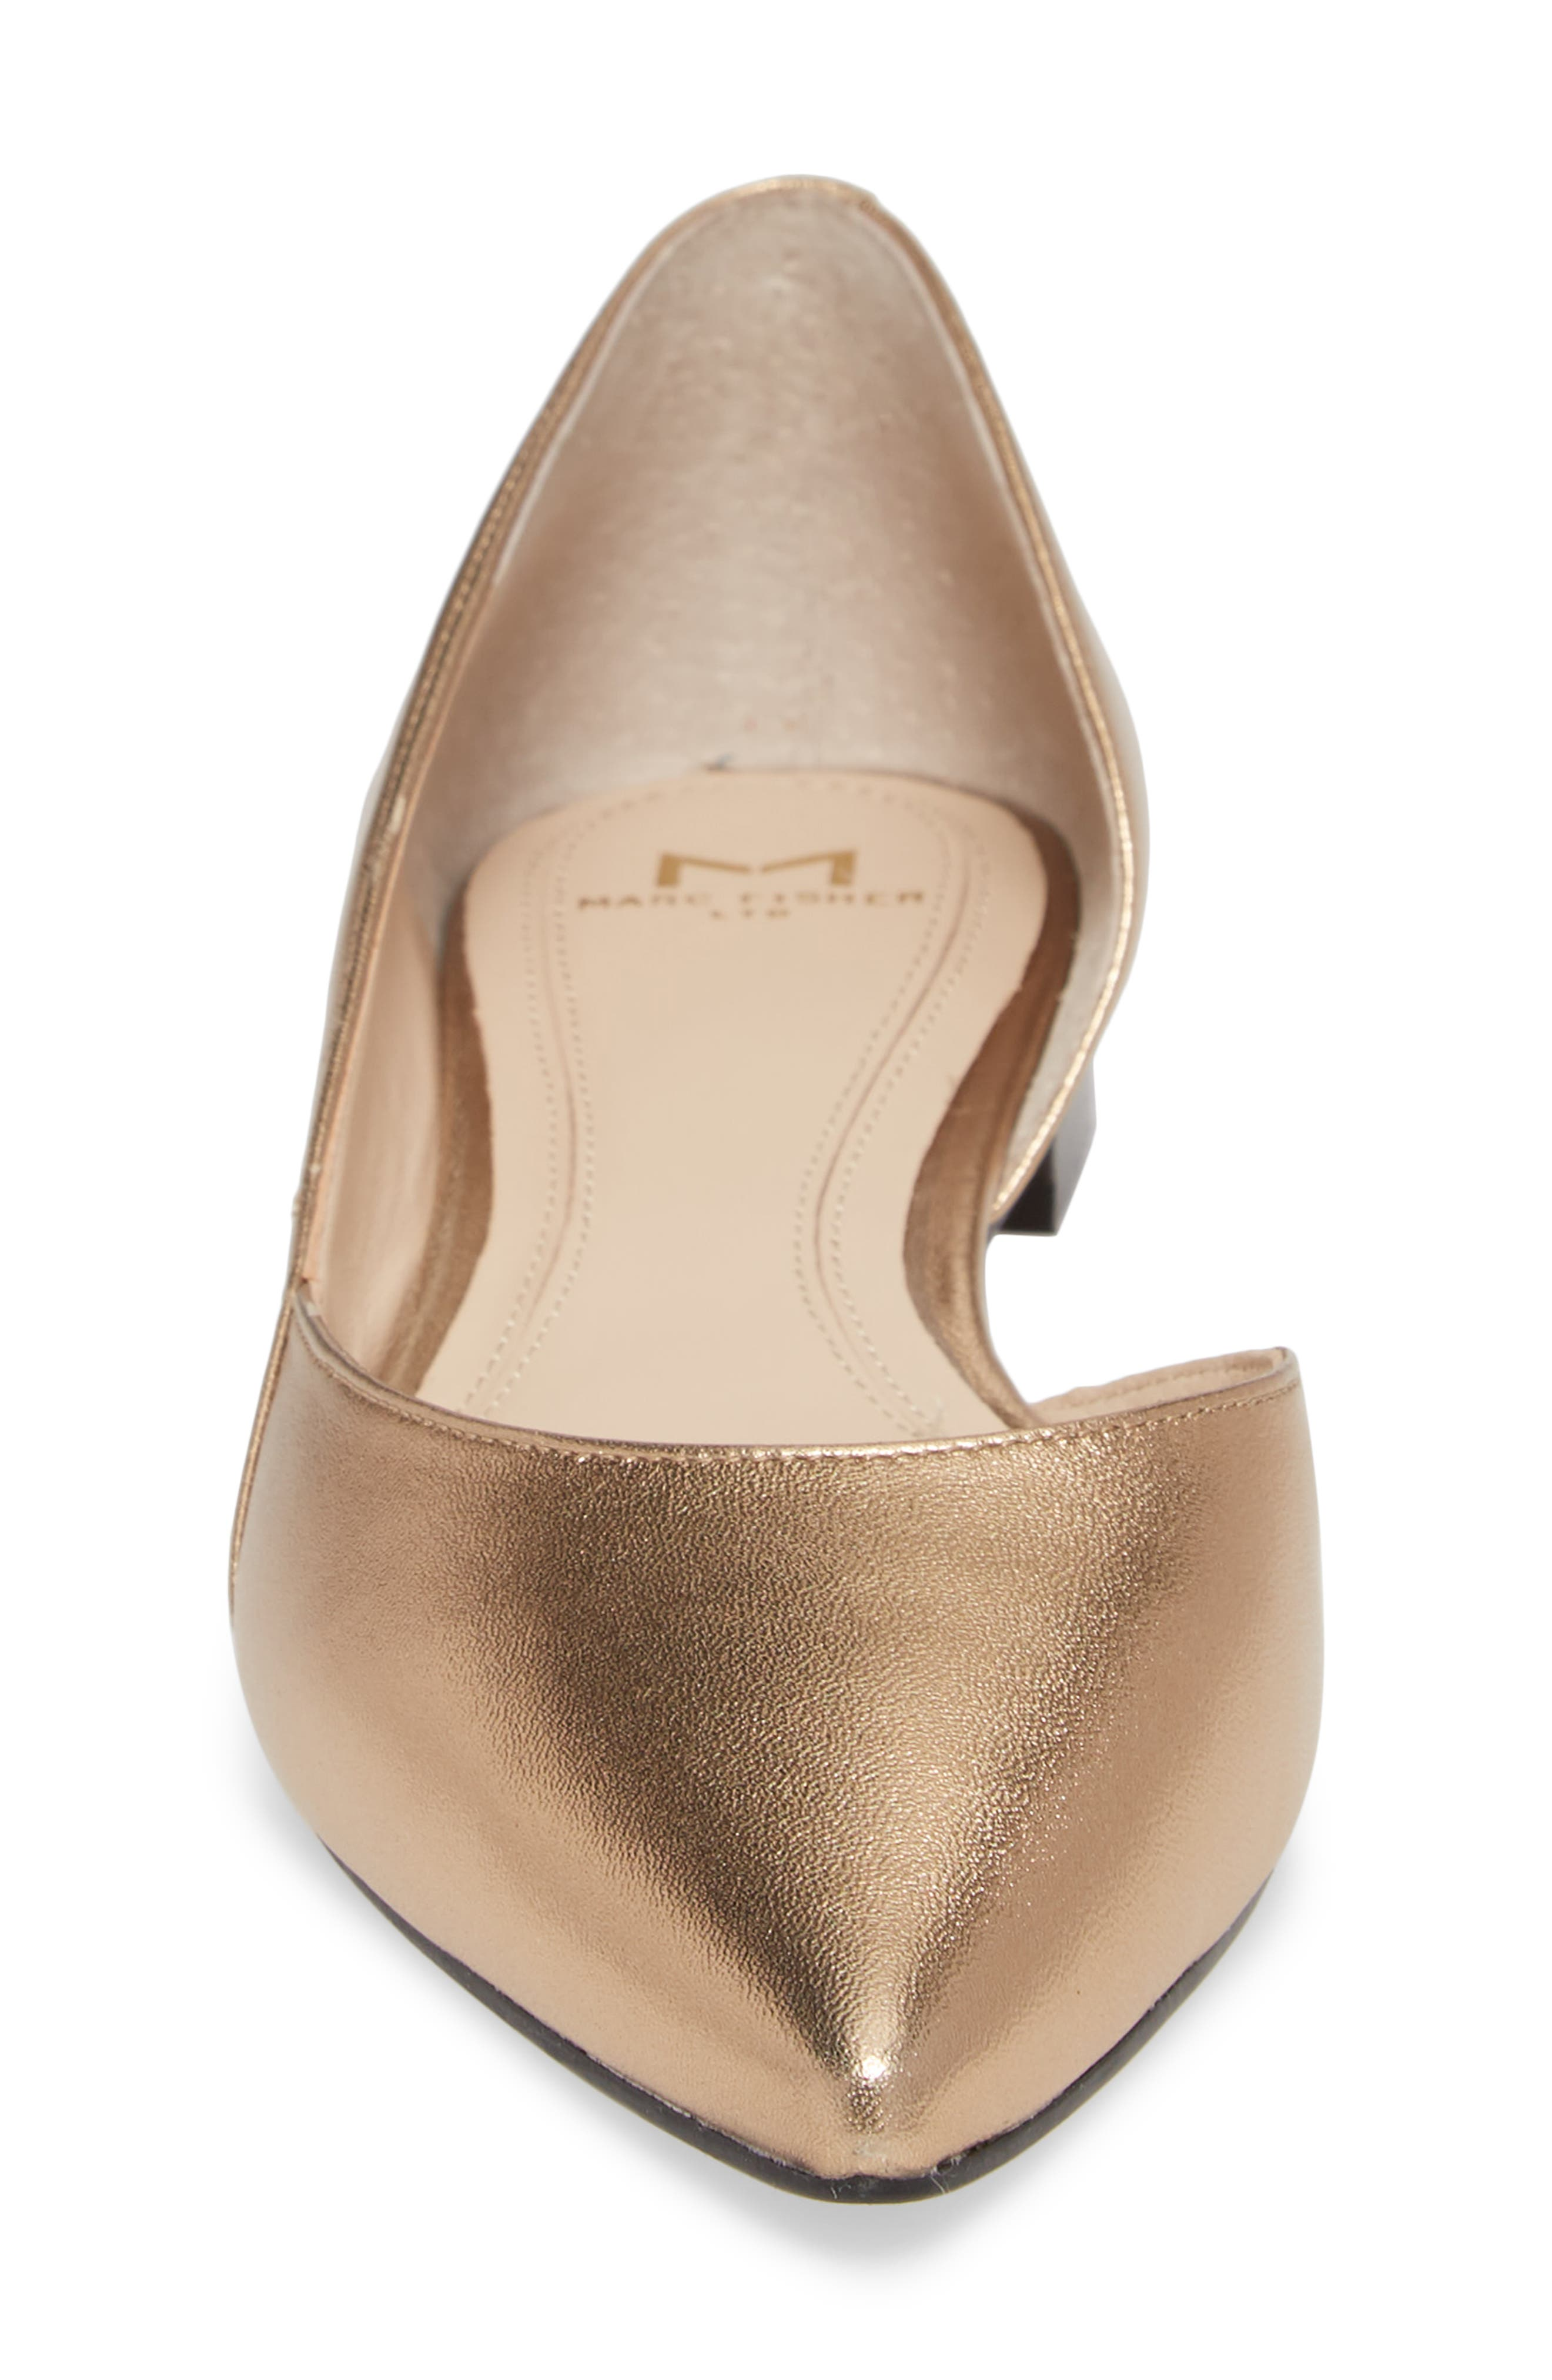 'Sunny' Half d'Orsay Flat,                             Alternate thumbnail 4, color,                             Gold Leather